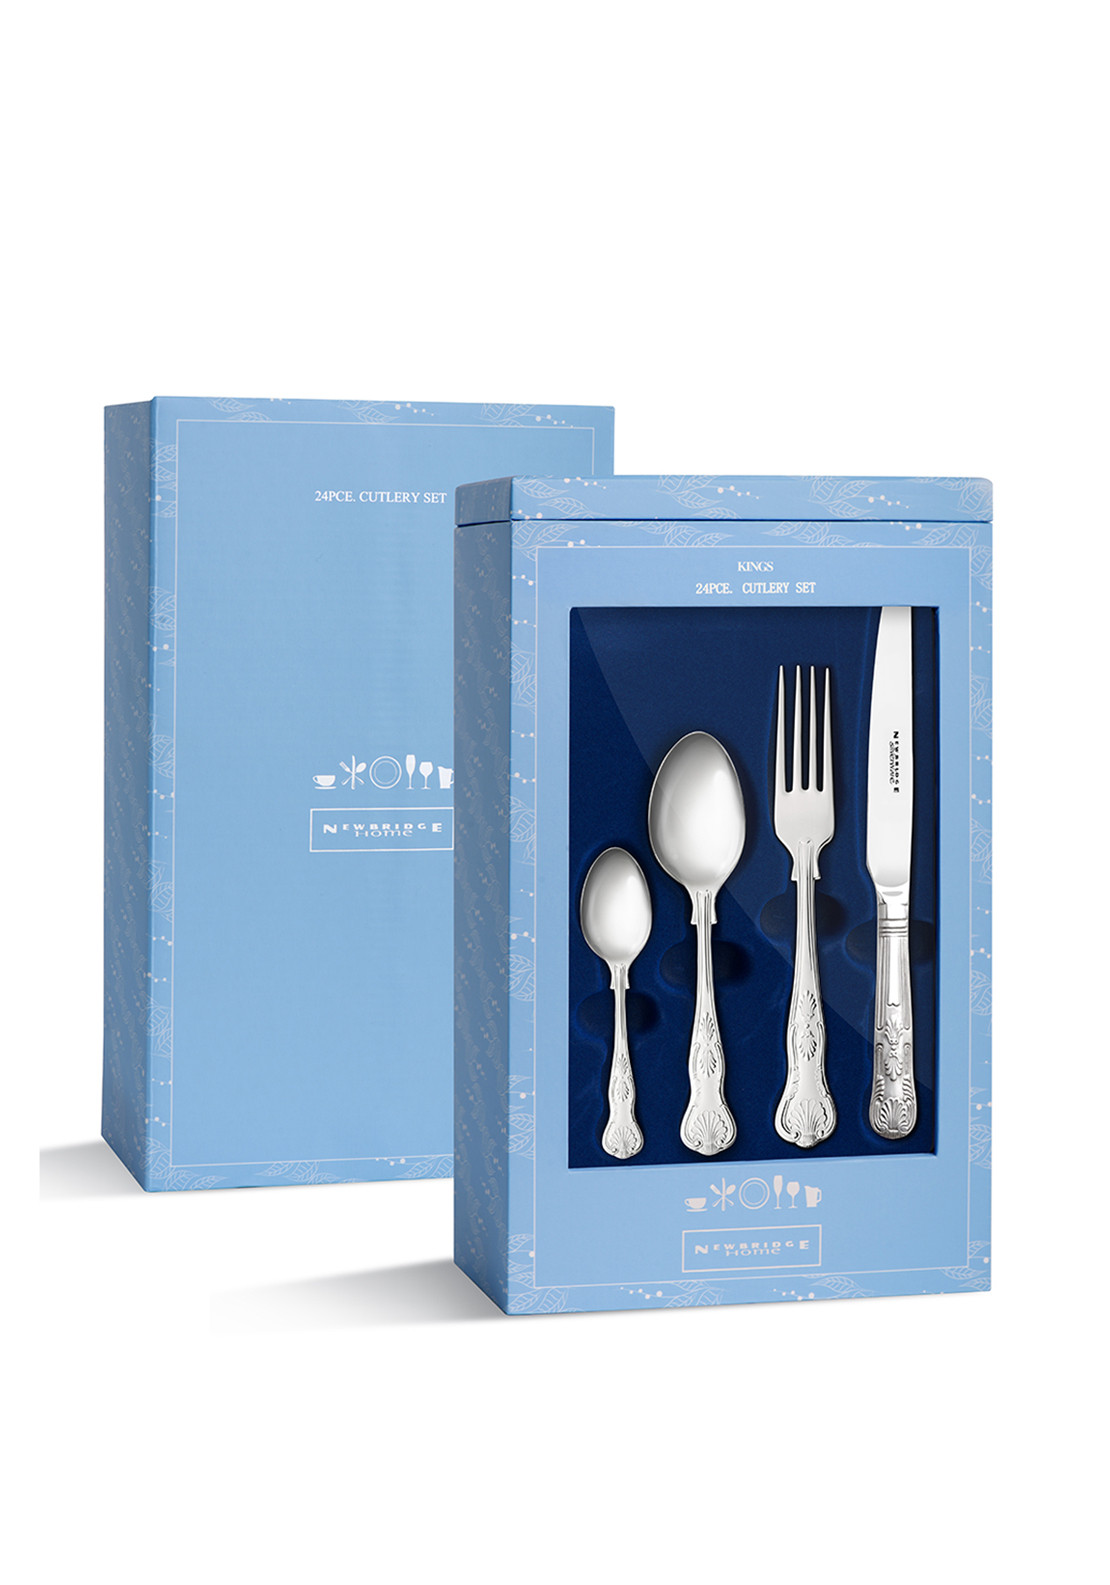 Newbridge Kings Stainless Steel Cutlery Gift Set, 24pce